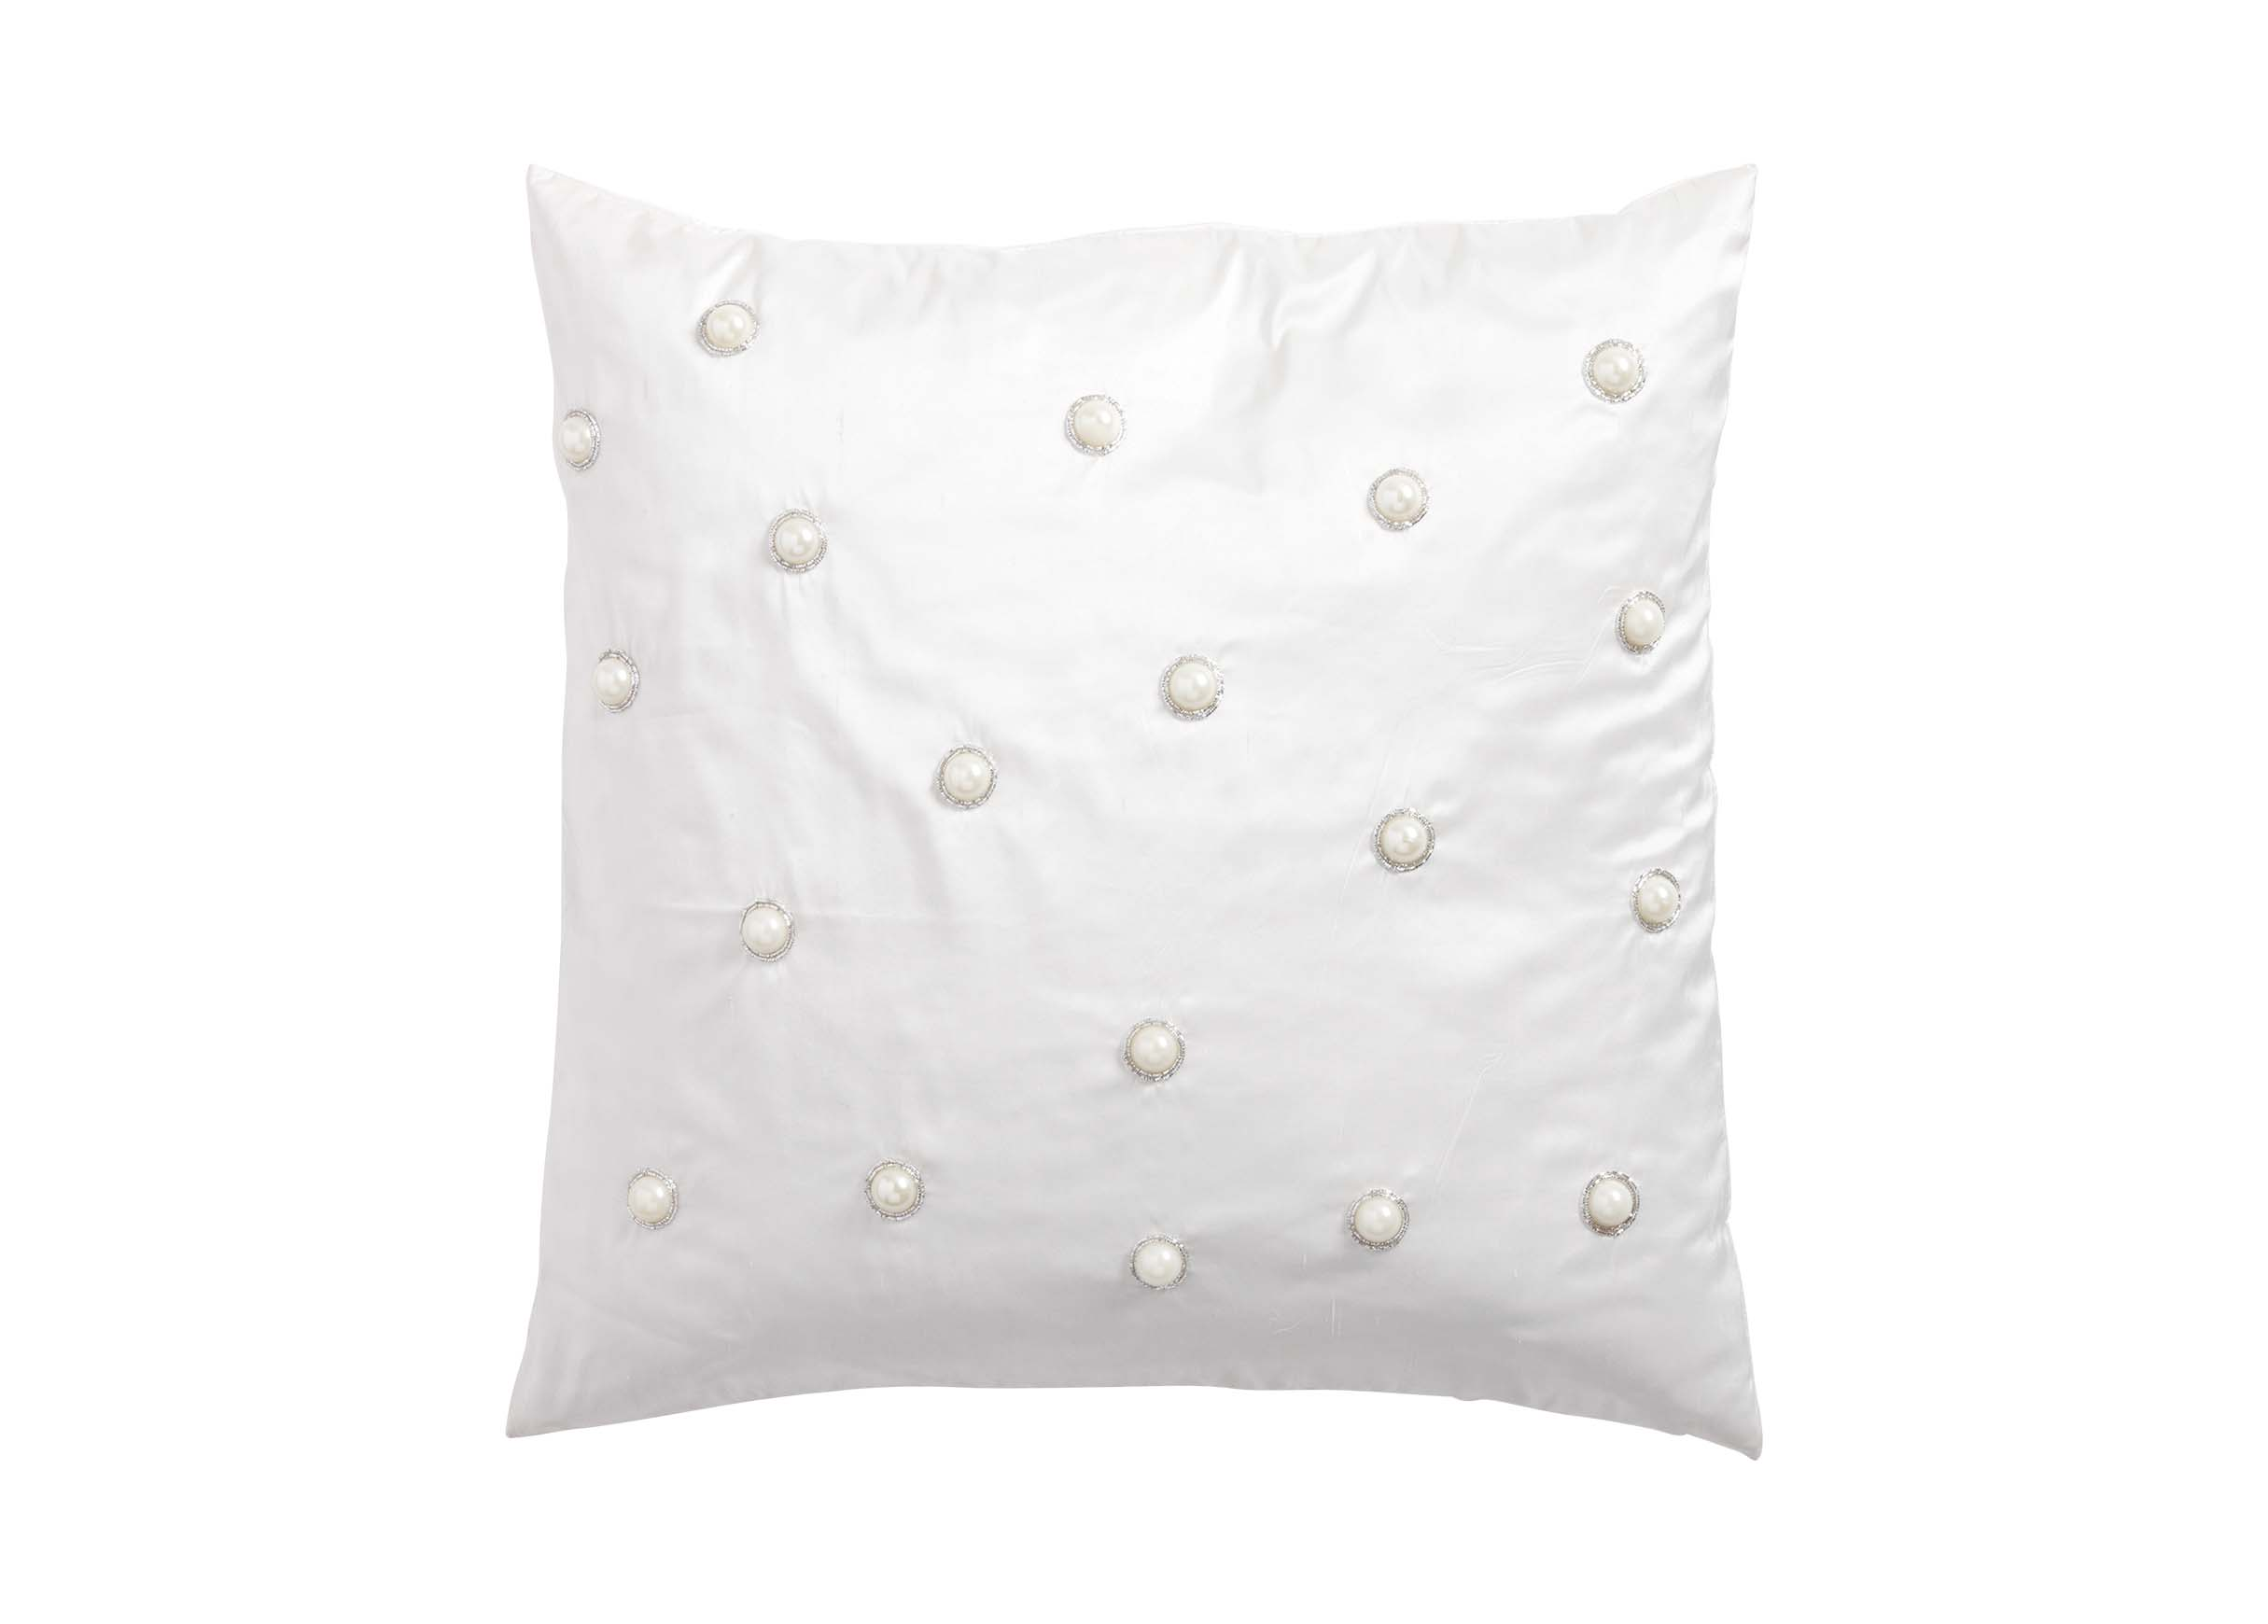 Decorative Pillow With Pearls : Pearl Embellished Pillow Pillows